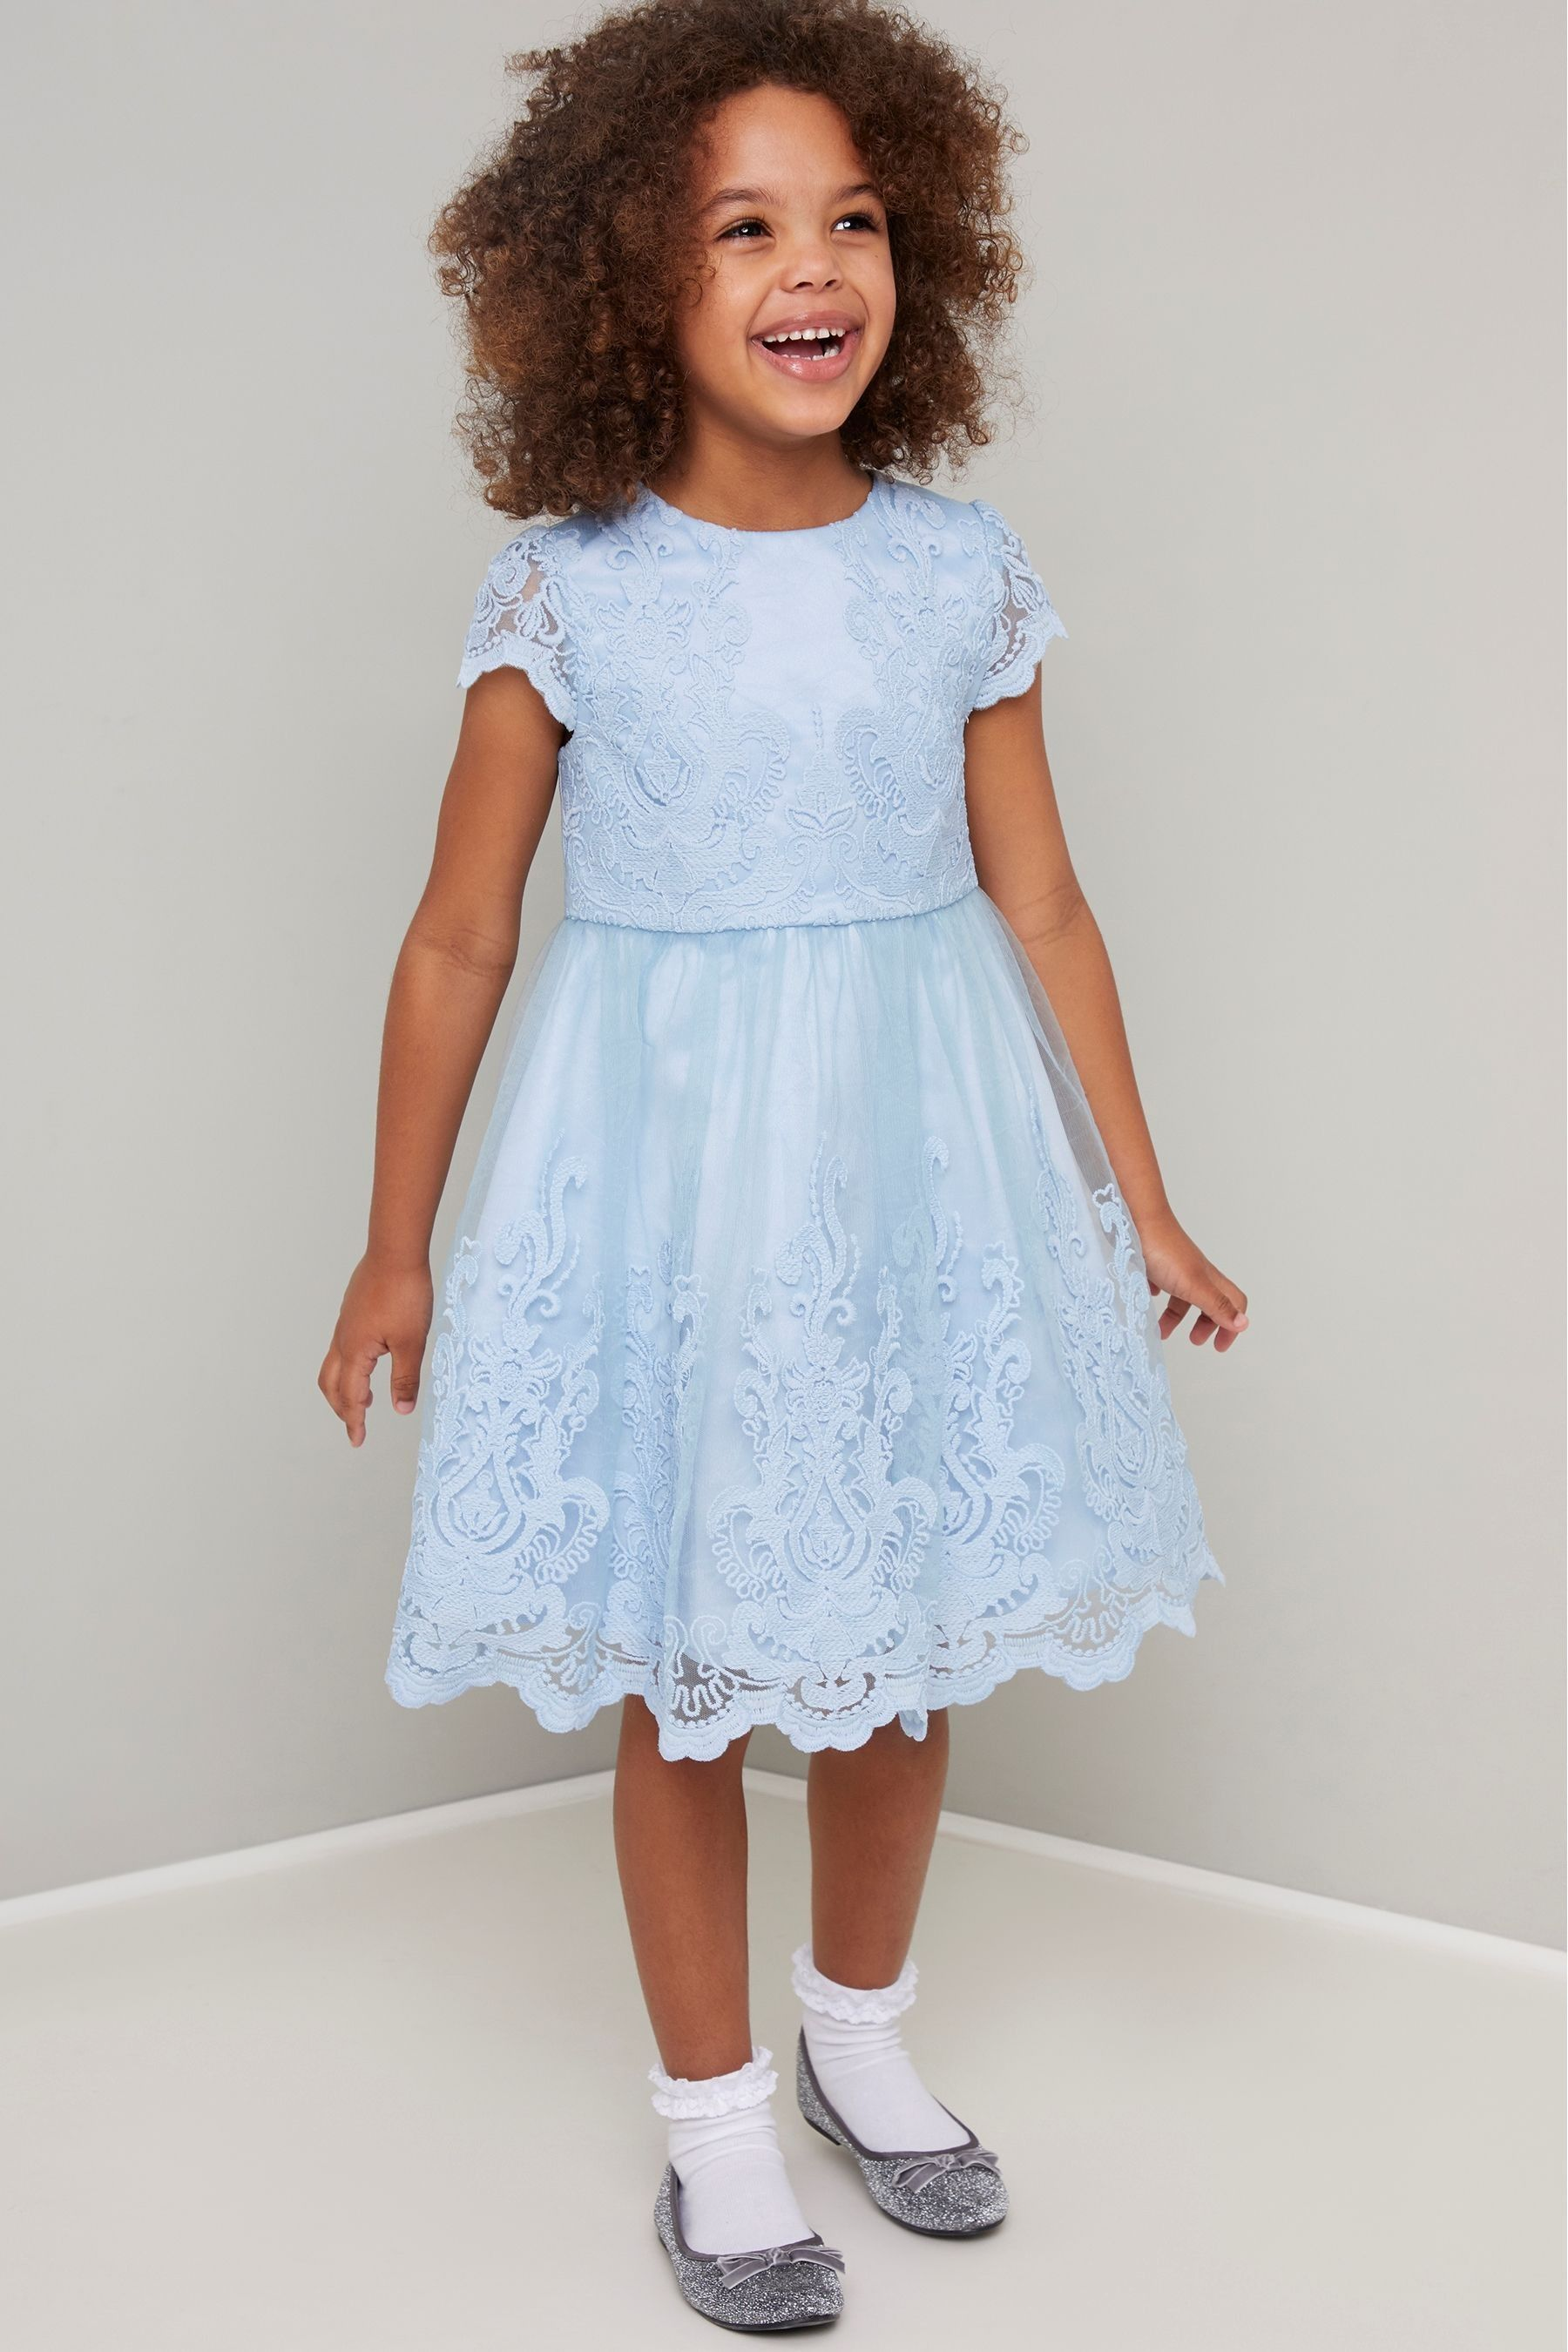 Chi Chi London Girls Rhiannon Dress | London girls, Dresses